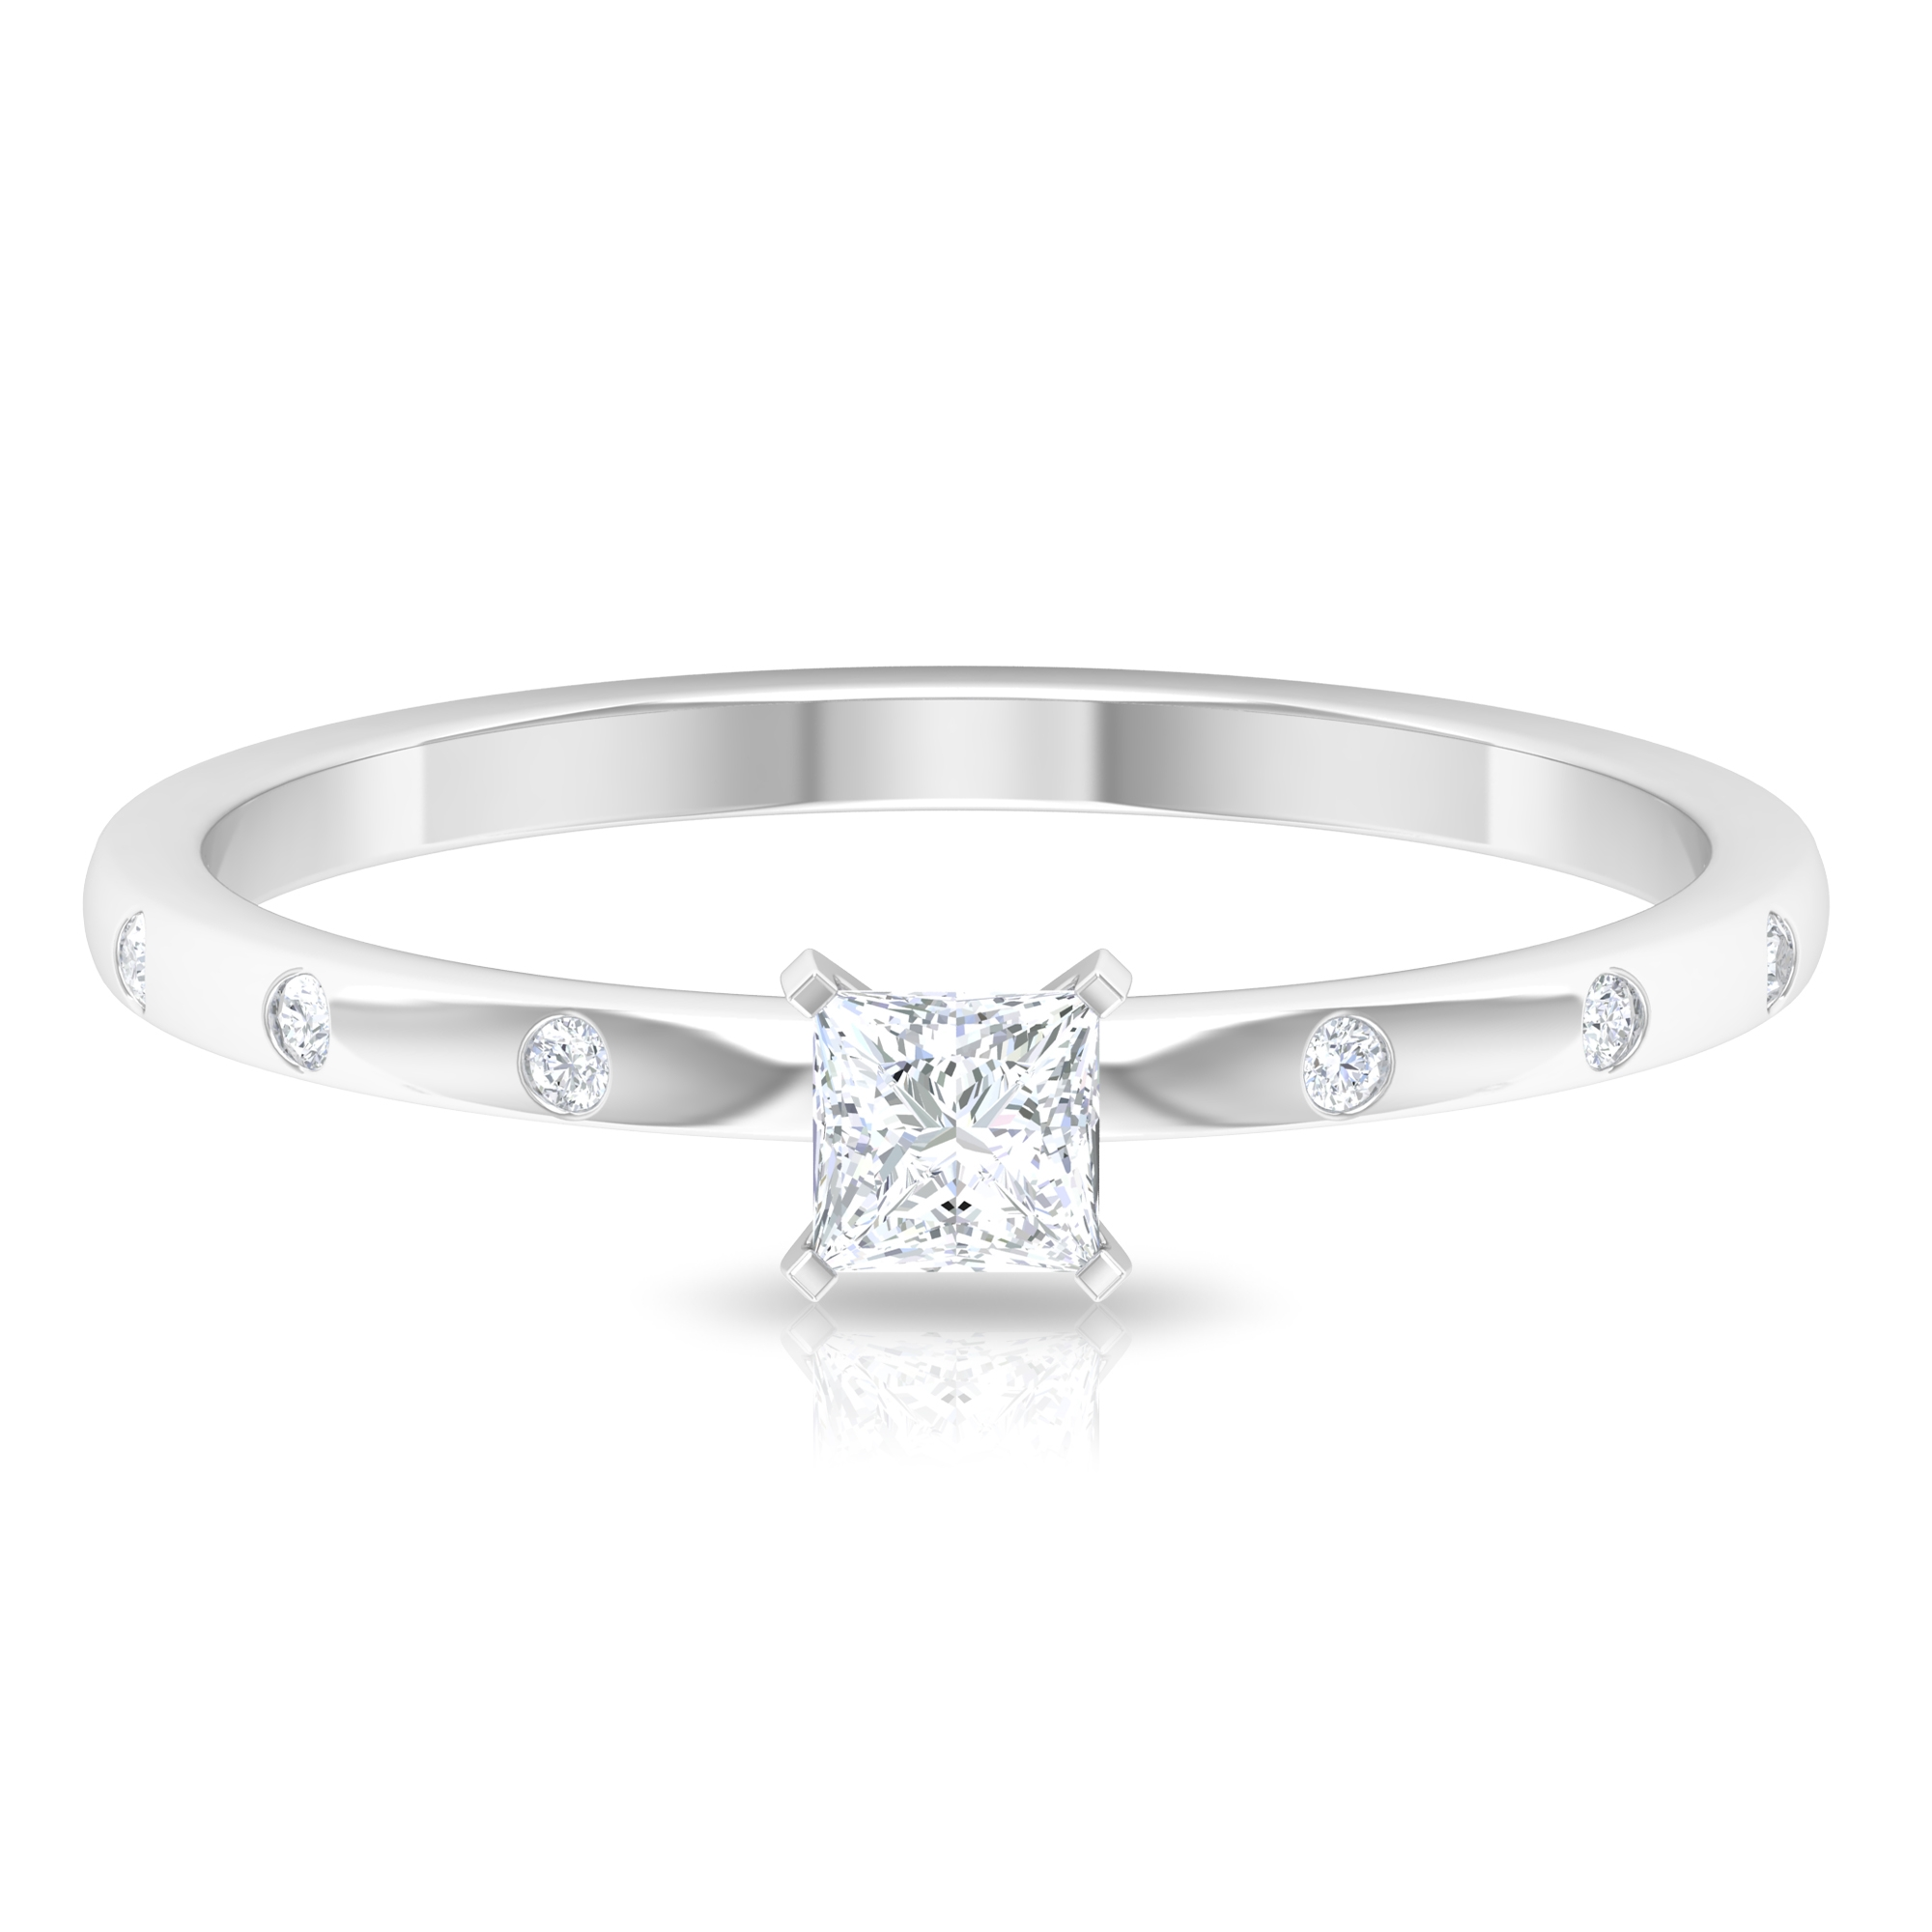 April Birthstone 1/4 CT Peg Head Set Princess Cut Diamond Solitaire Ring with Sleek Accent Side Stones